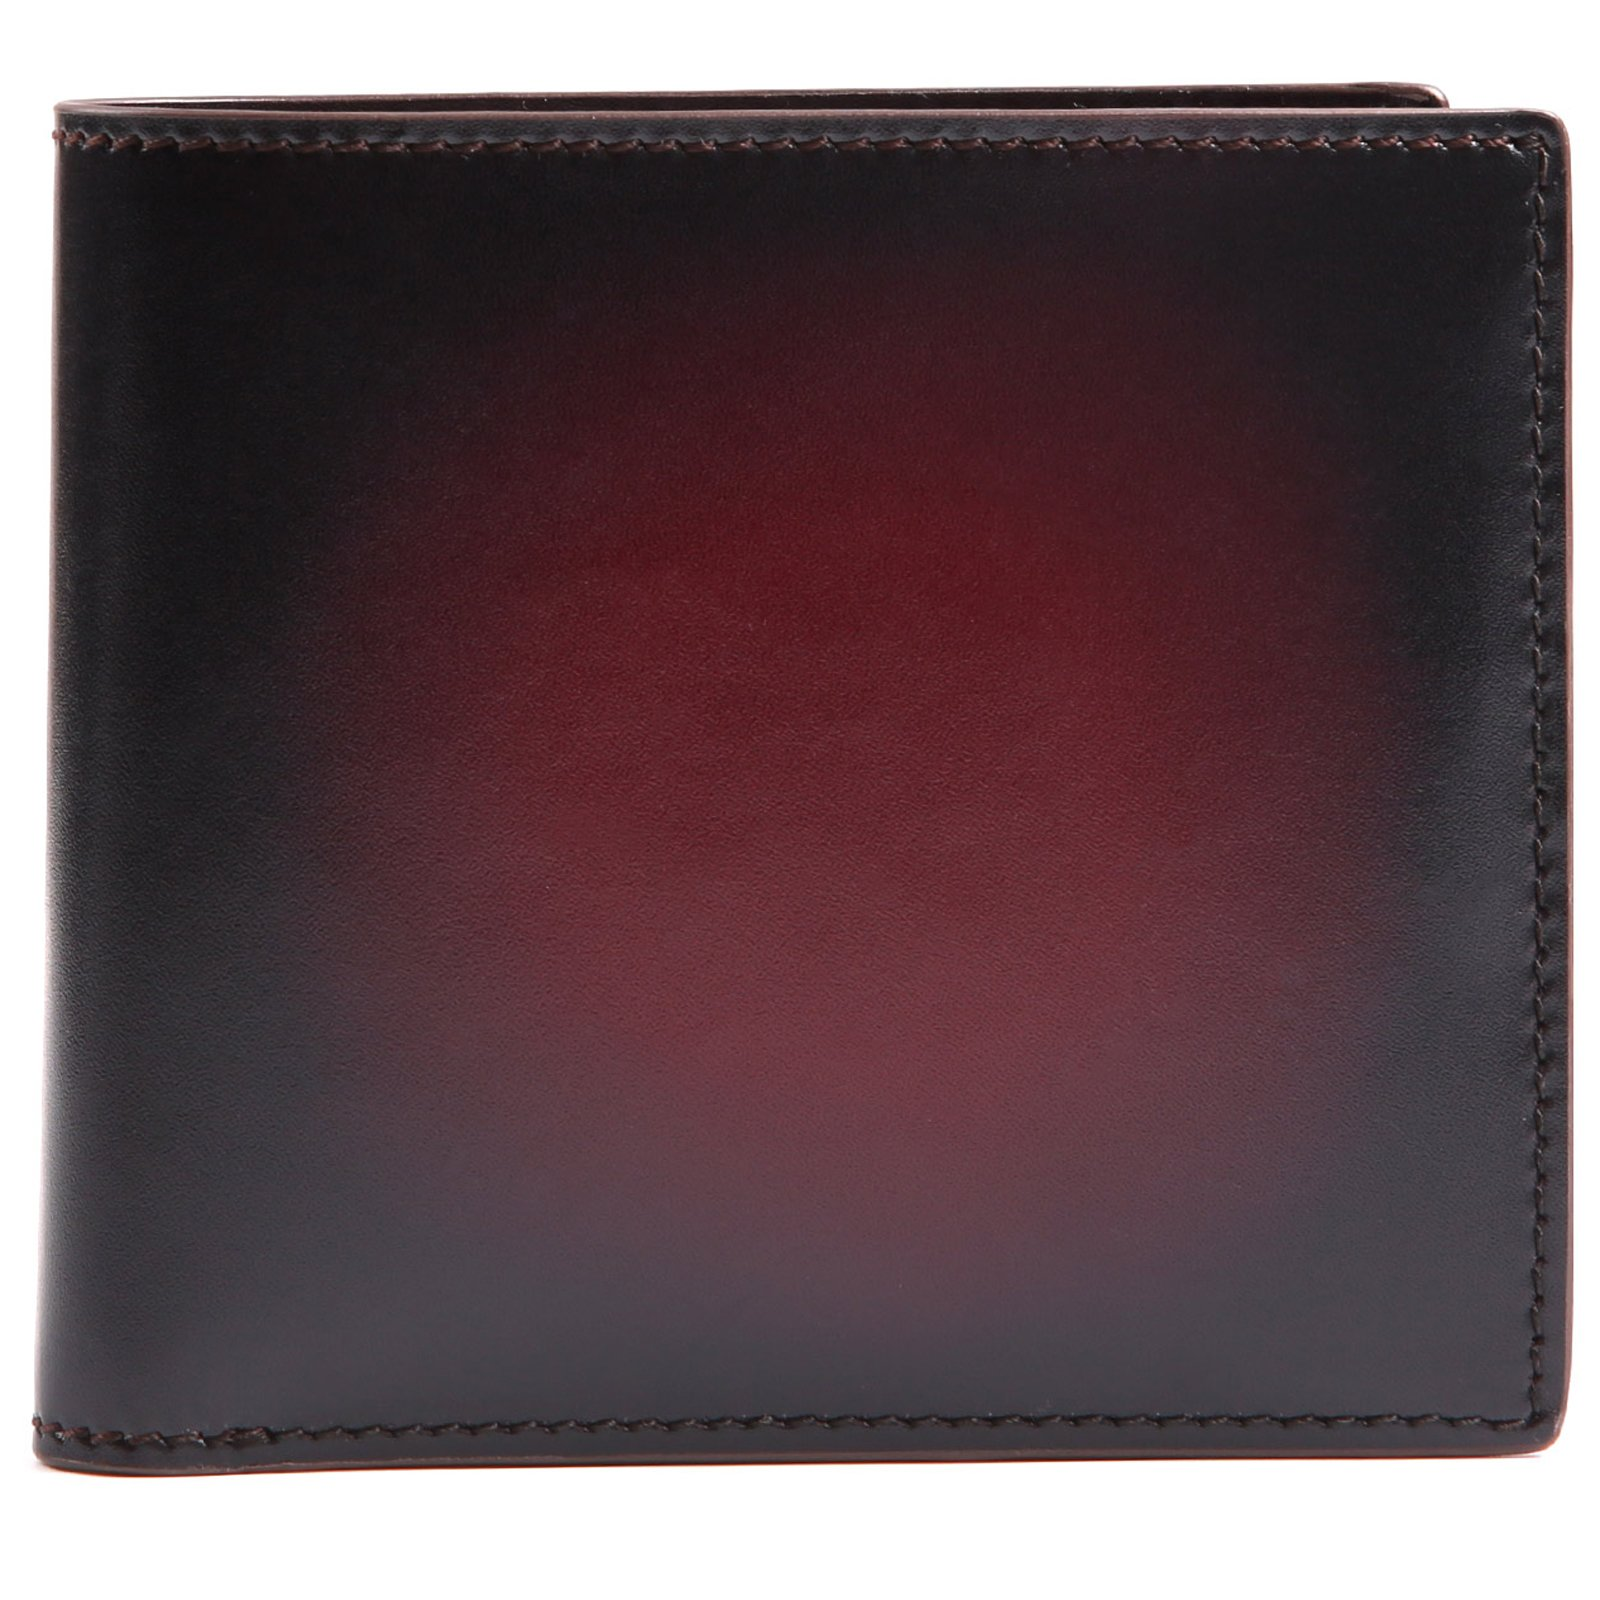 Terse Slim Bifold Wallet,Italy Leather Wallet For Men with Money Clip Credit Card Holder